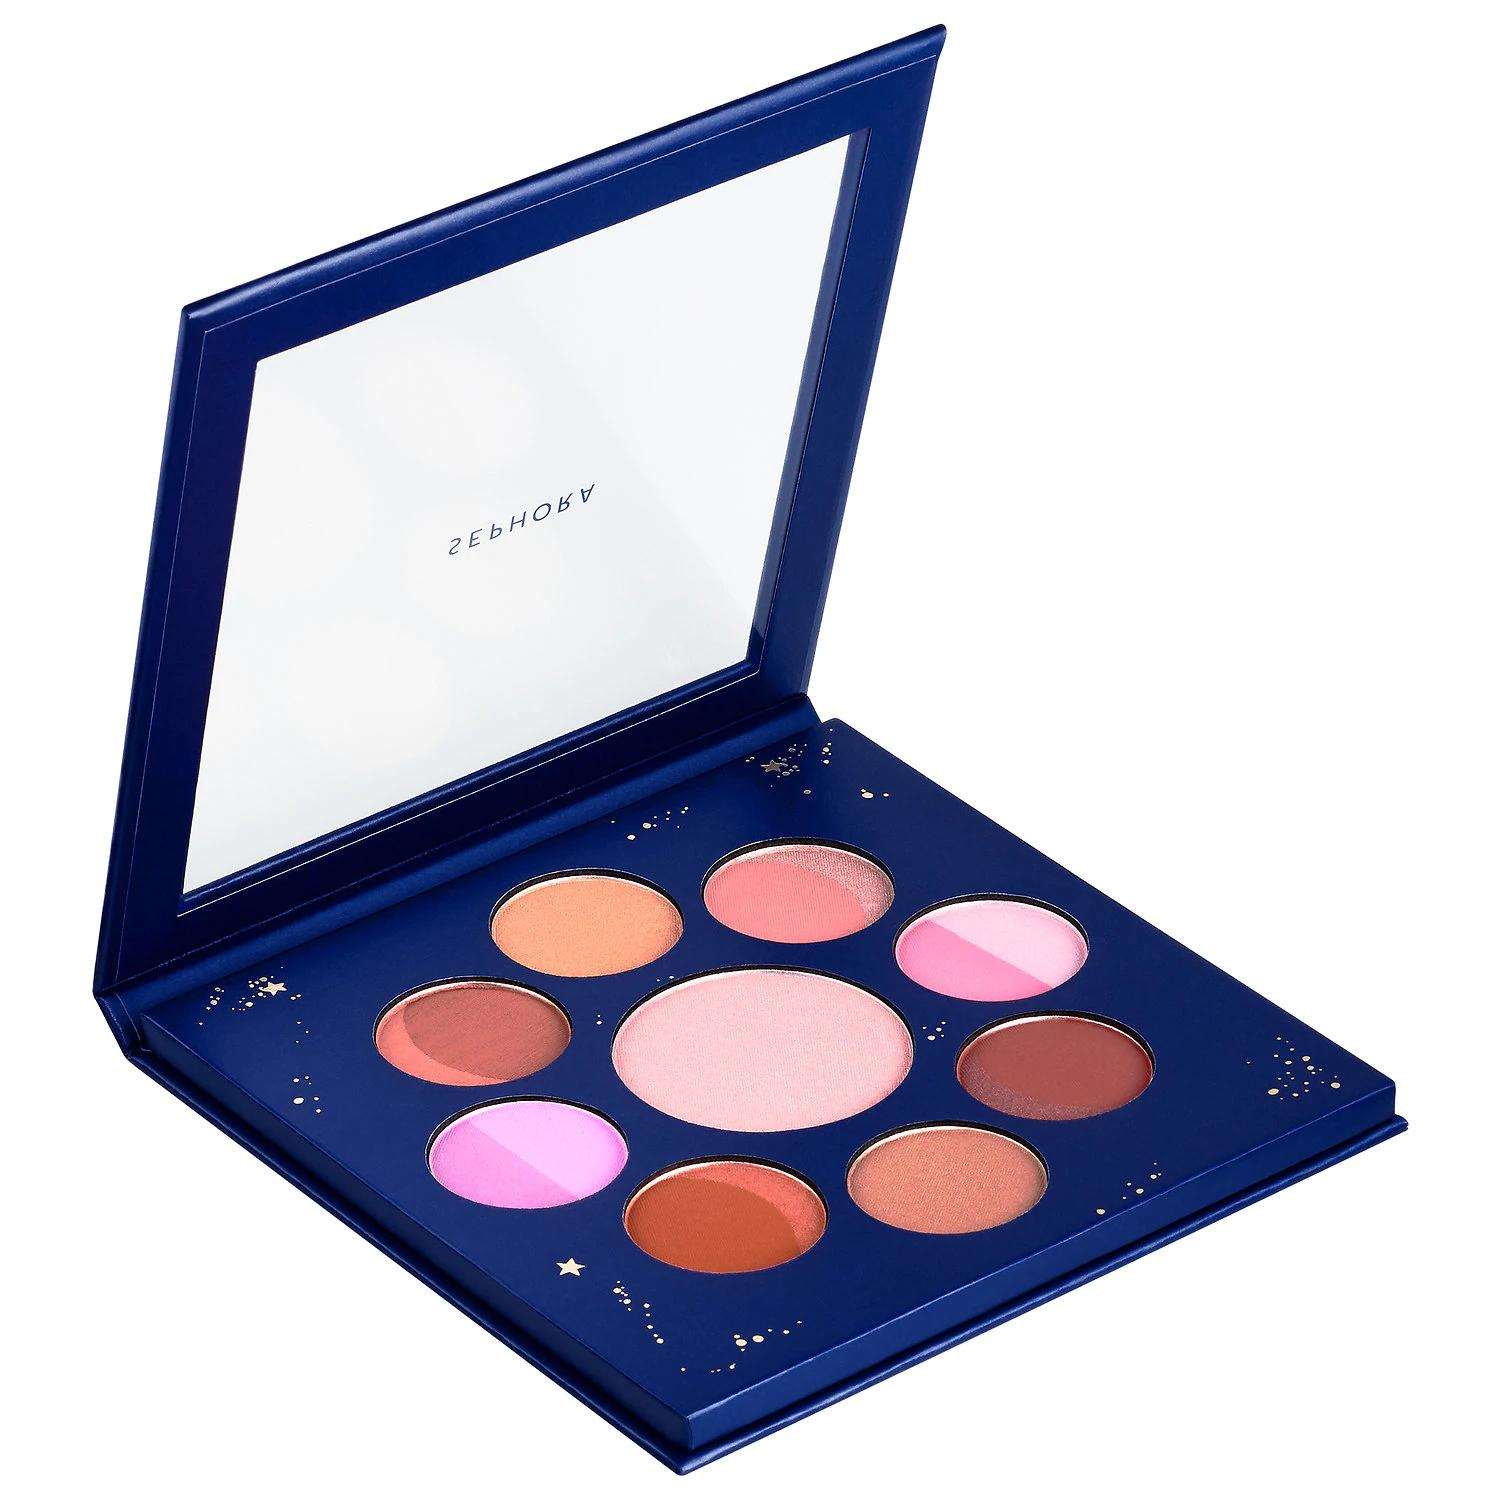 Sephora Moon Phases Blush Palette